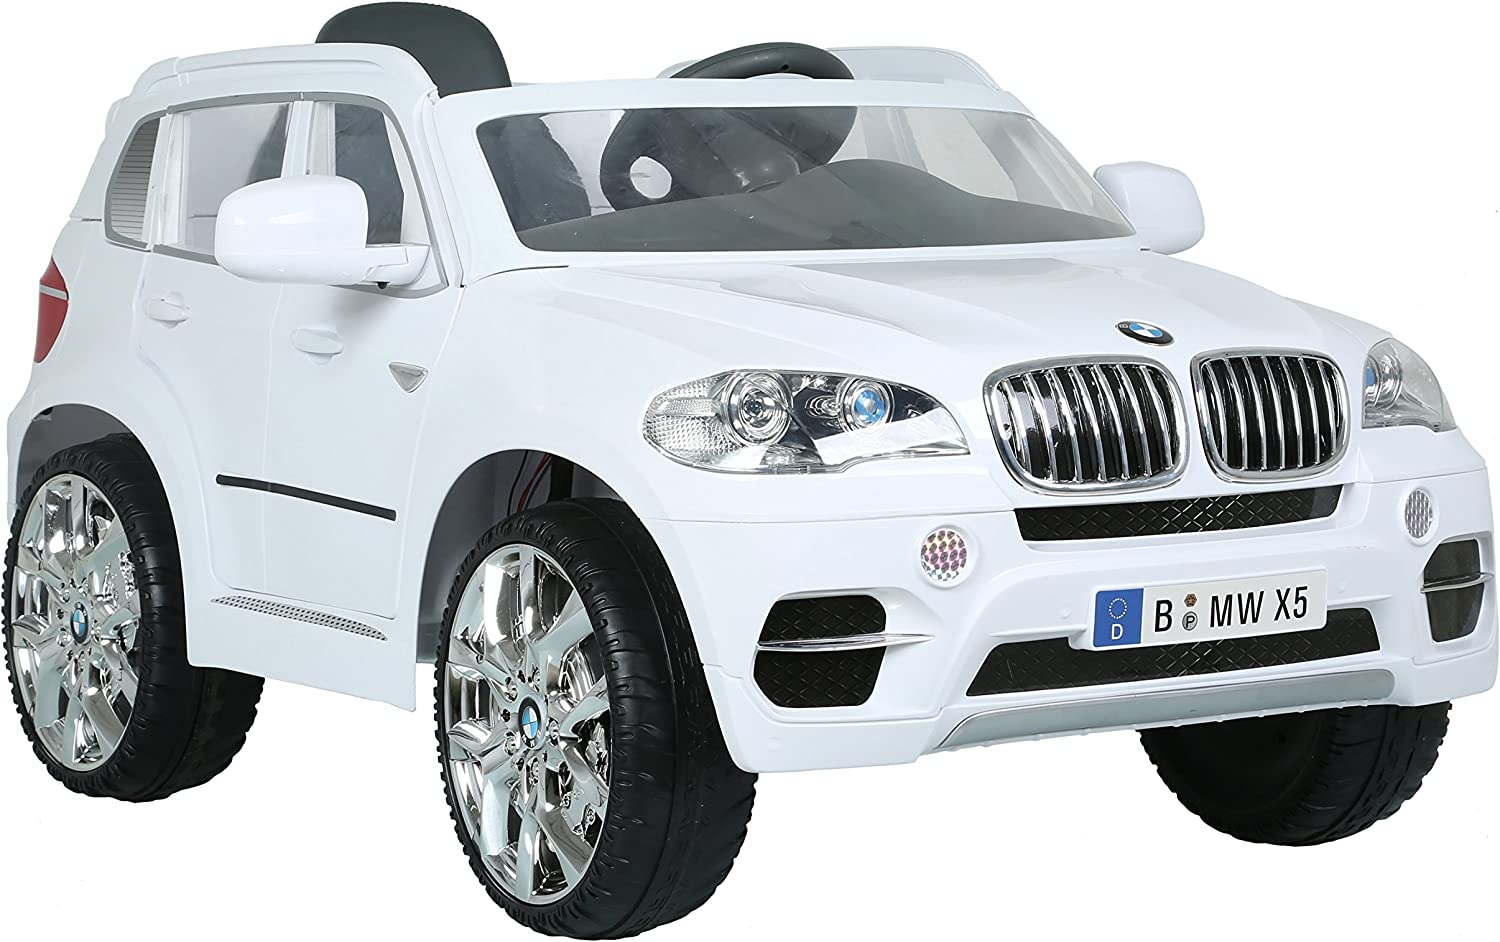 Up to 4 km//h 12-Volt Battery ROLLPLAY Premium Electric Car Reverse Gear With Remote Control Up to 35 kg BMW X5 SUV Black For Children 3 Years and Older